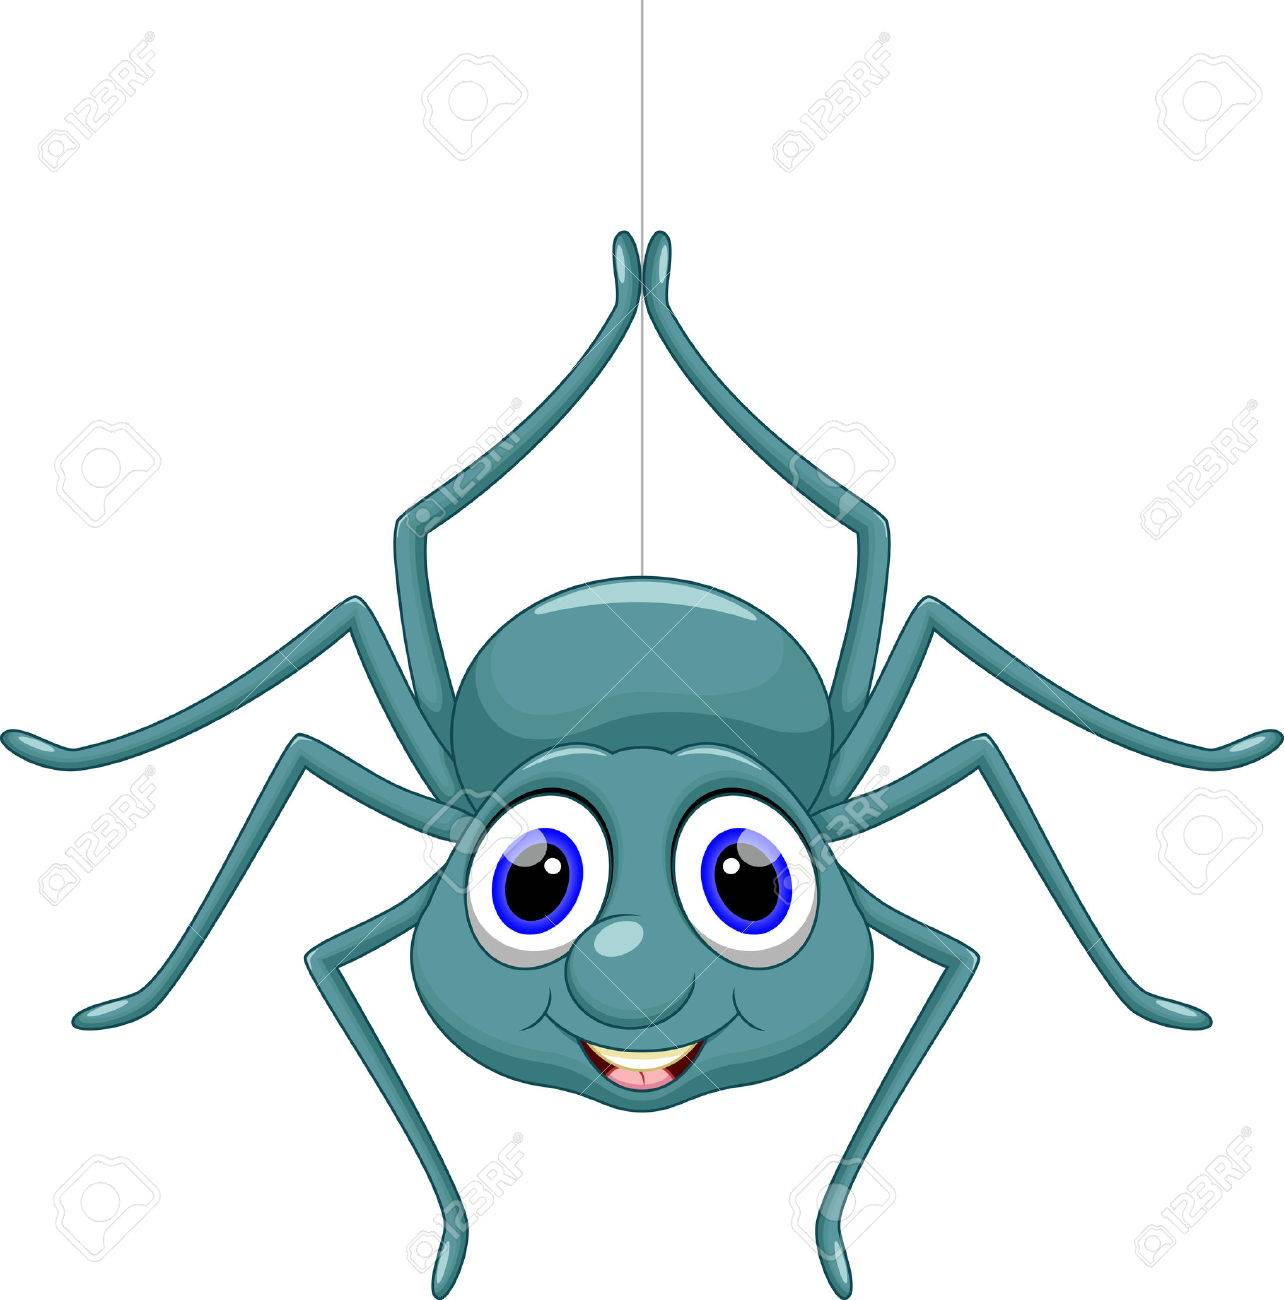 spider cartoon stock photos royalty free spider cartoon images